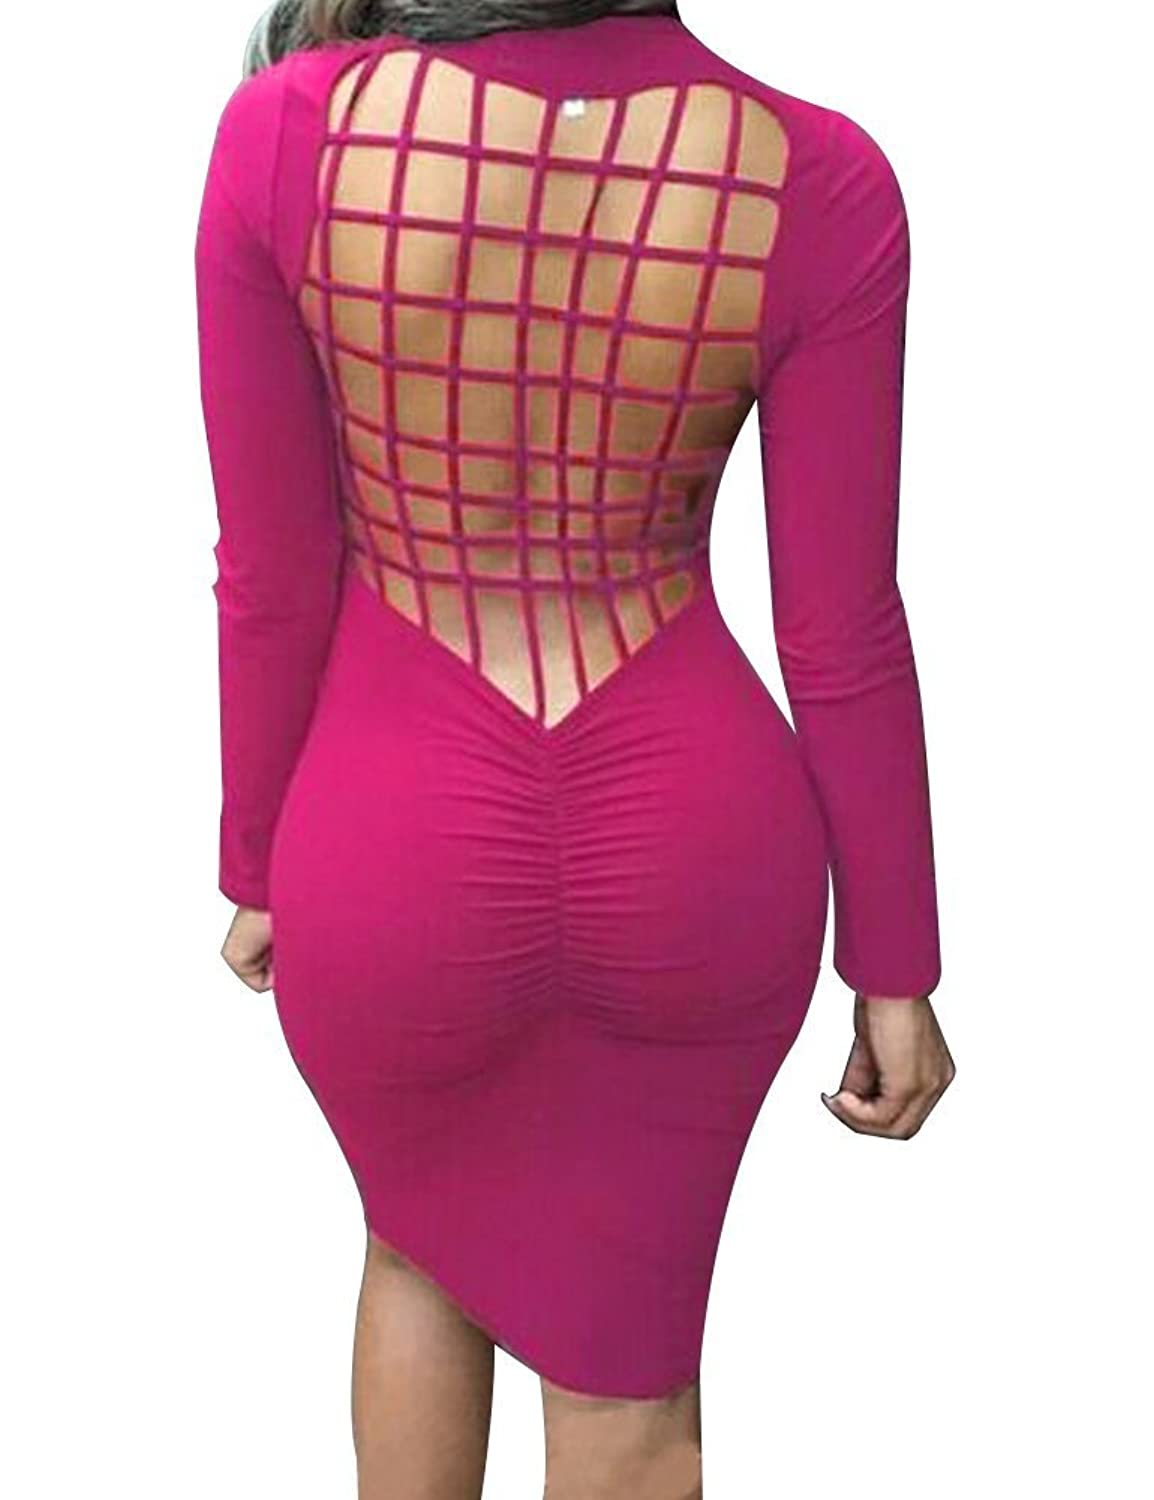 YiYaYo Womens Long Sleeve Back Mesh Cross Cut Bandage Evening Dresses